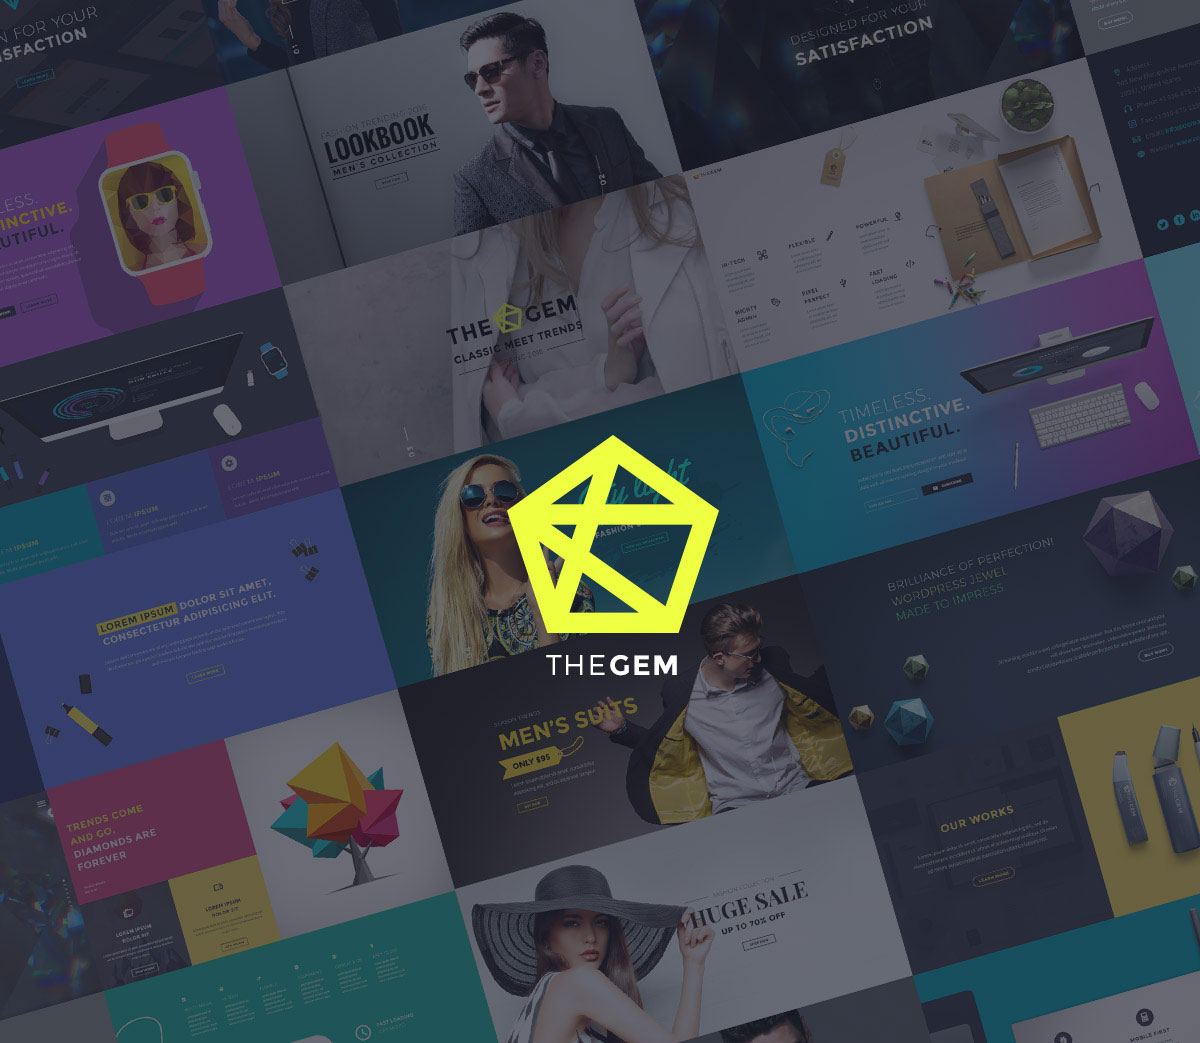 thegem-fullscreen-business-theme-for-wp